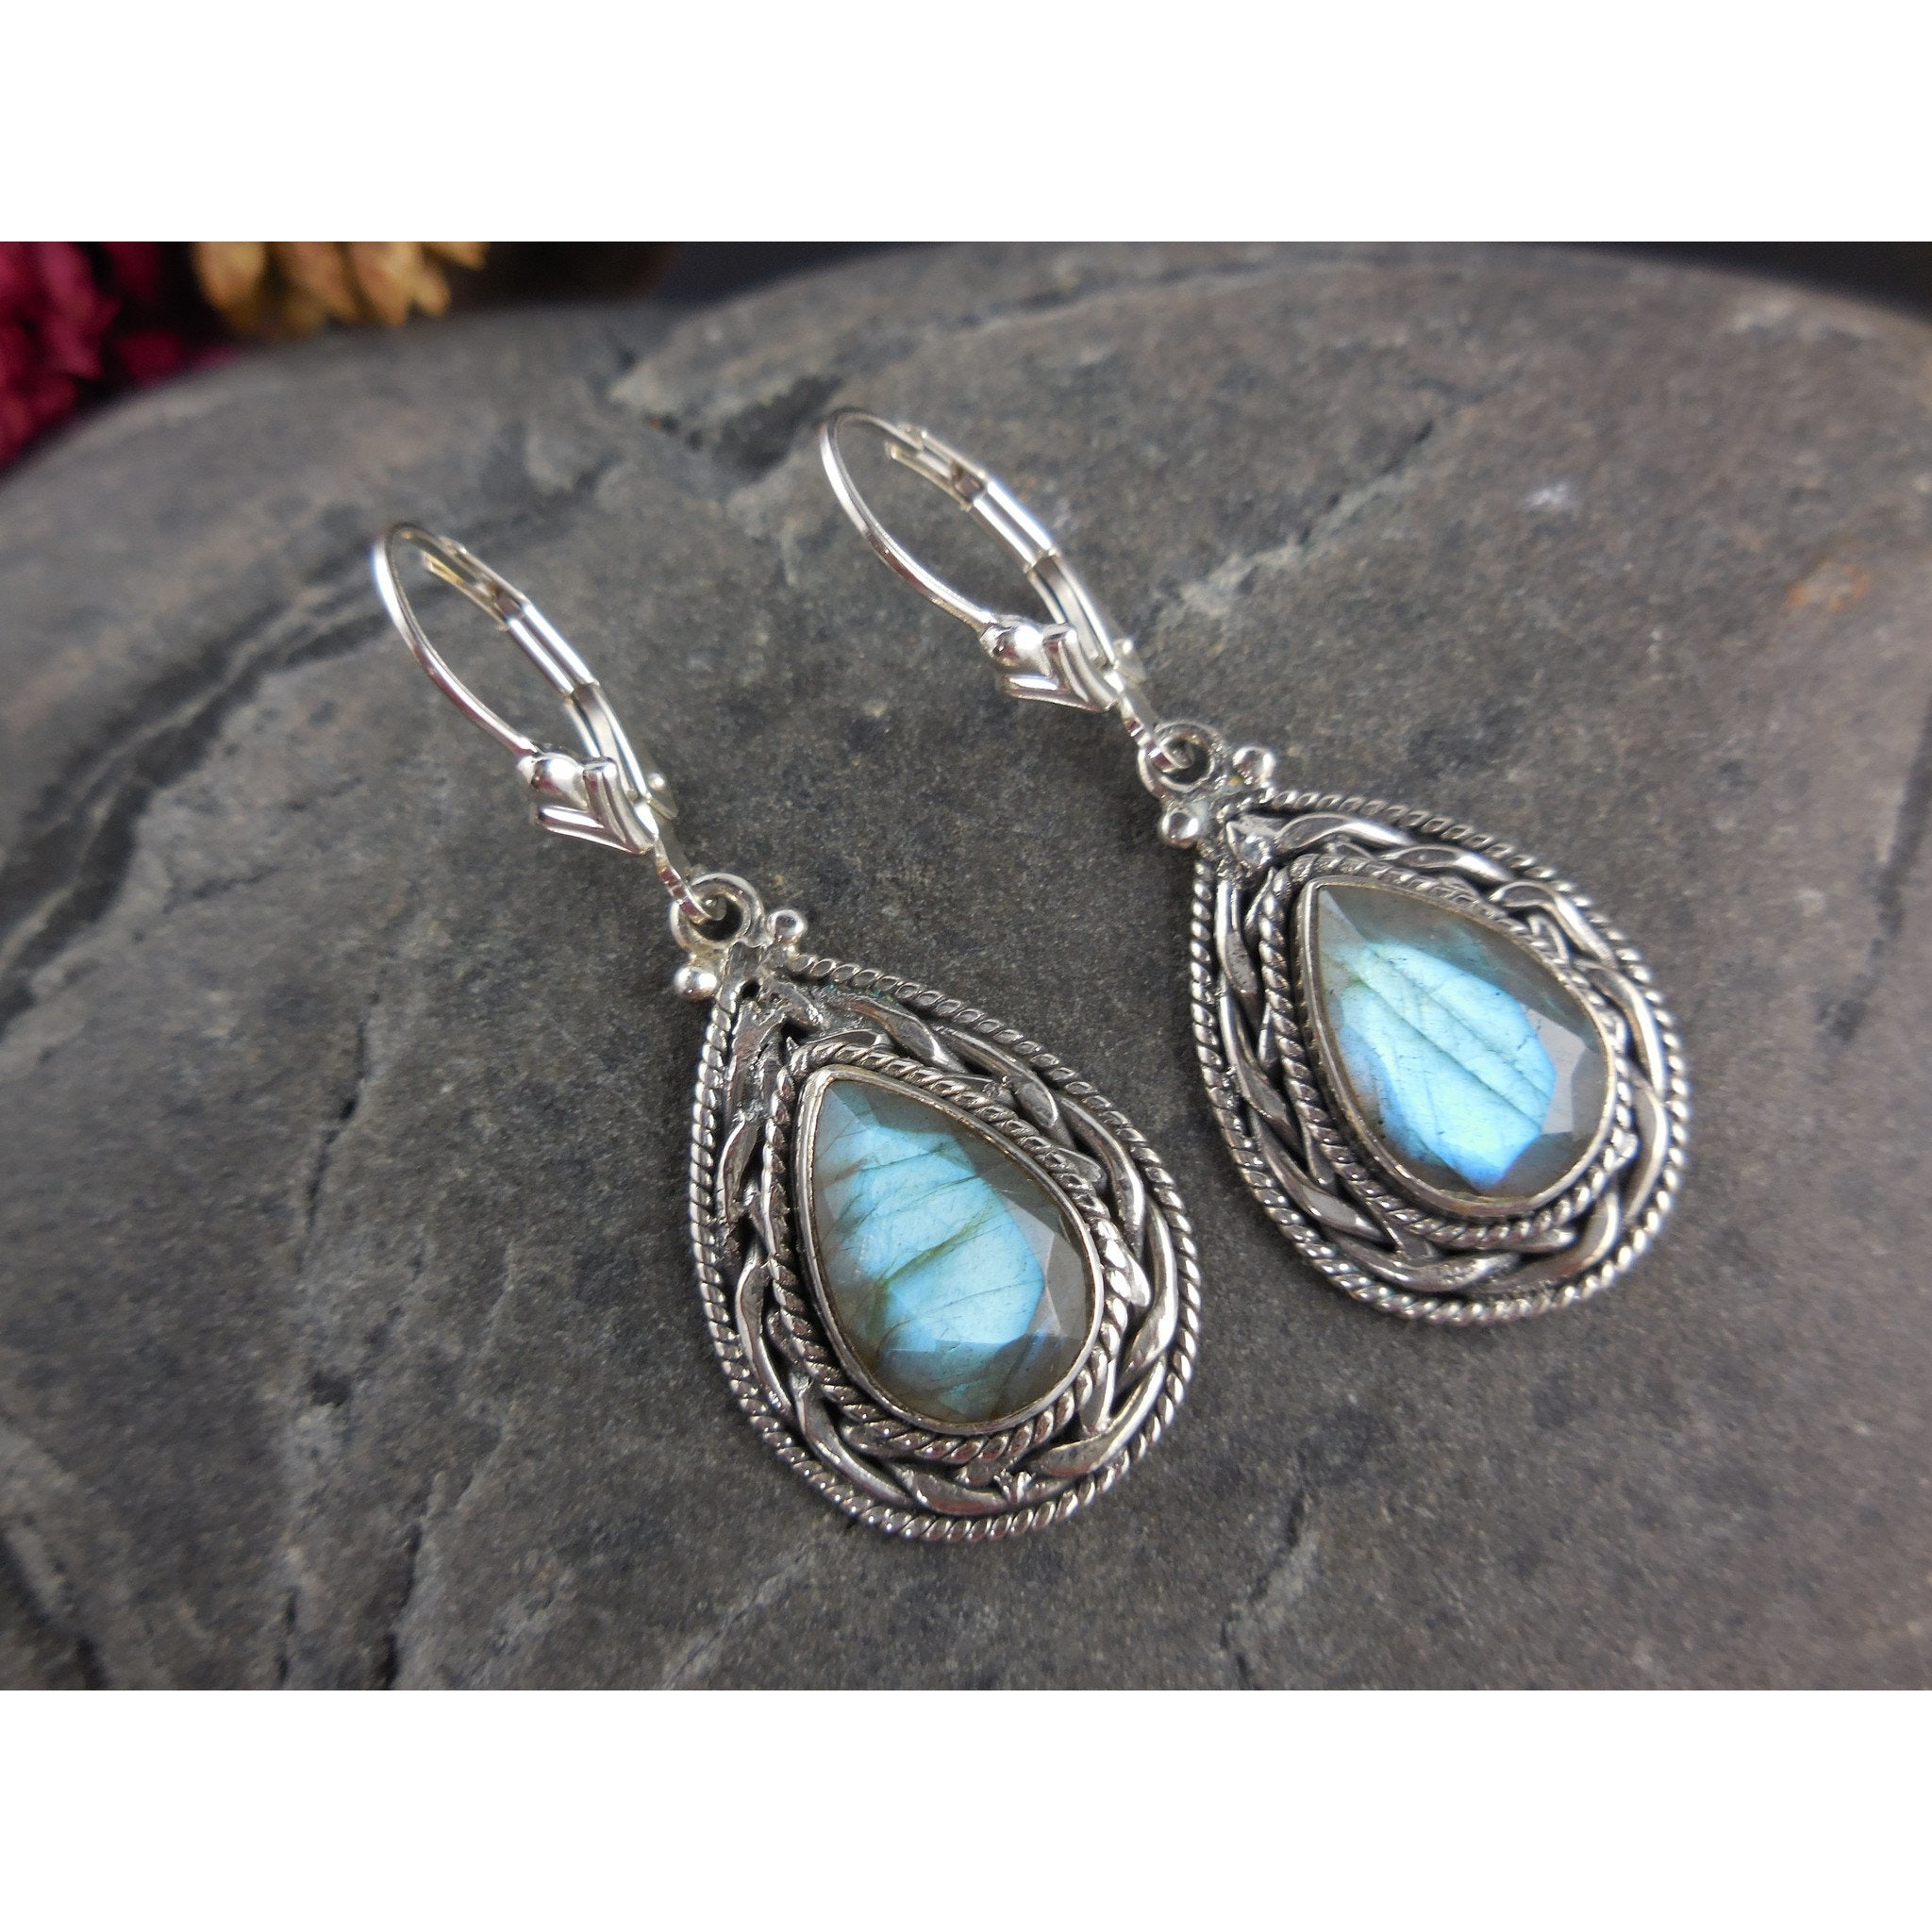 Labradorite Gemstone Sterling Silver Earrings